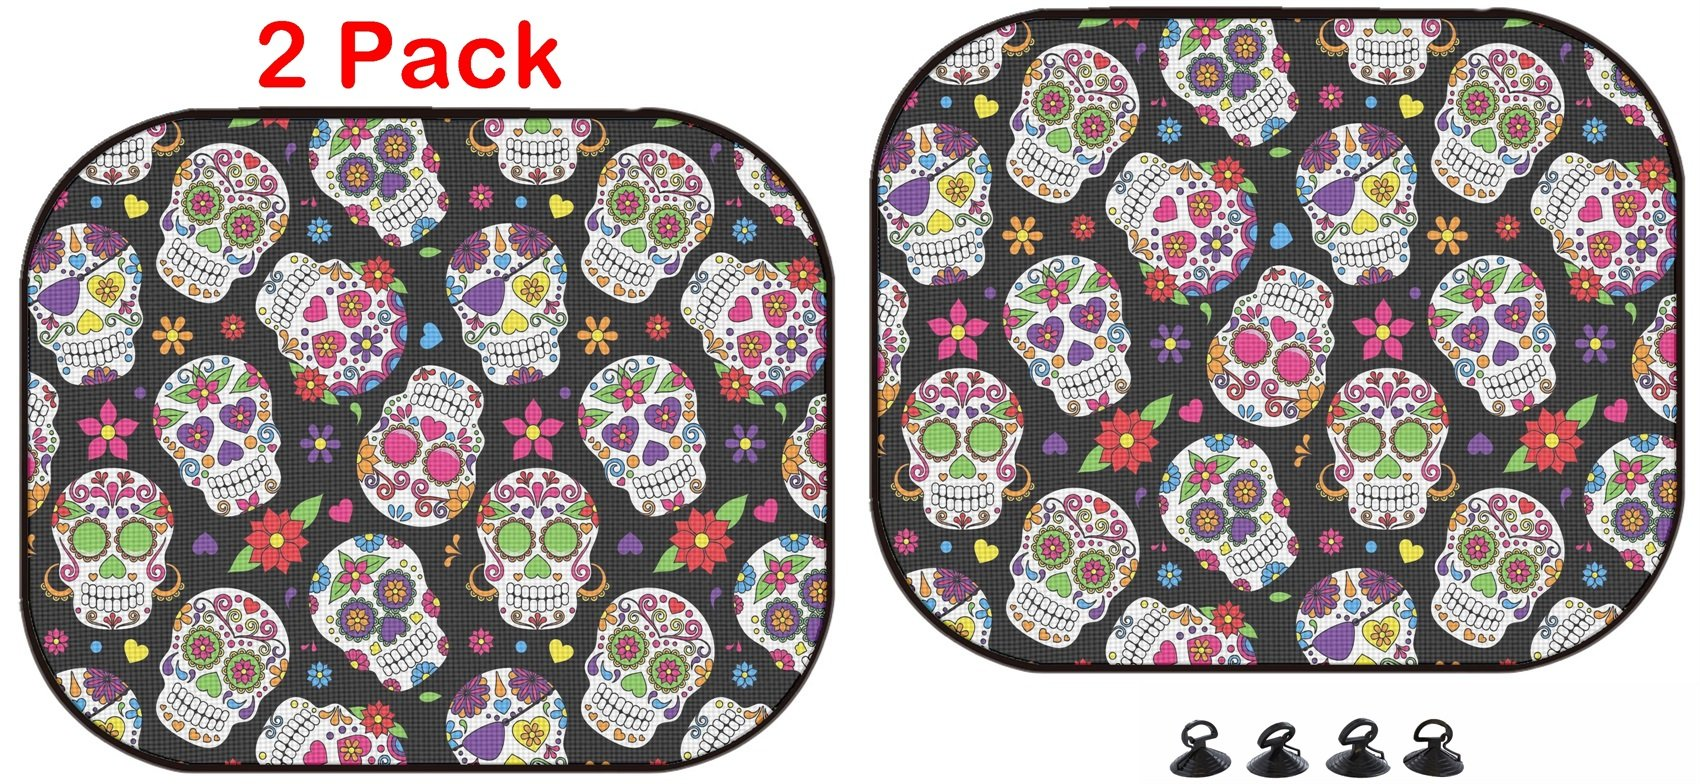 Luxlady Car Sun Shade Protector Block Damaging UV Rays Sunlight Heat for All Vehicles, 2 Pack Image ID: 36626870 Day of The Dead Sugar Skull Seamless Vector Background